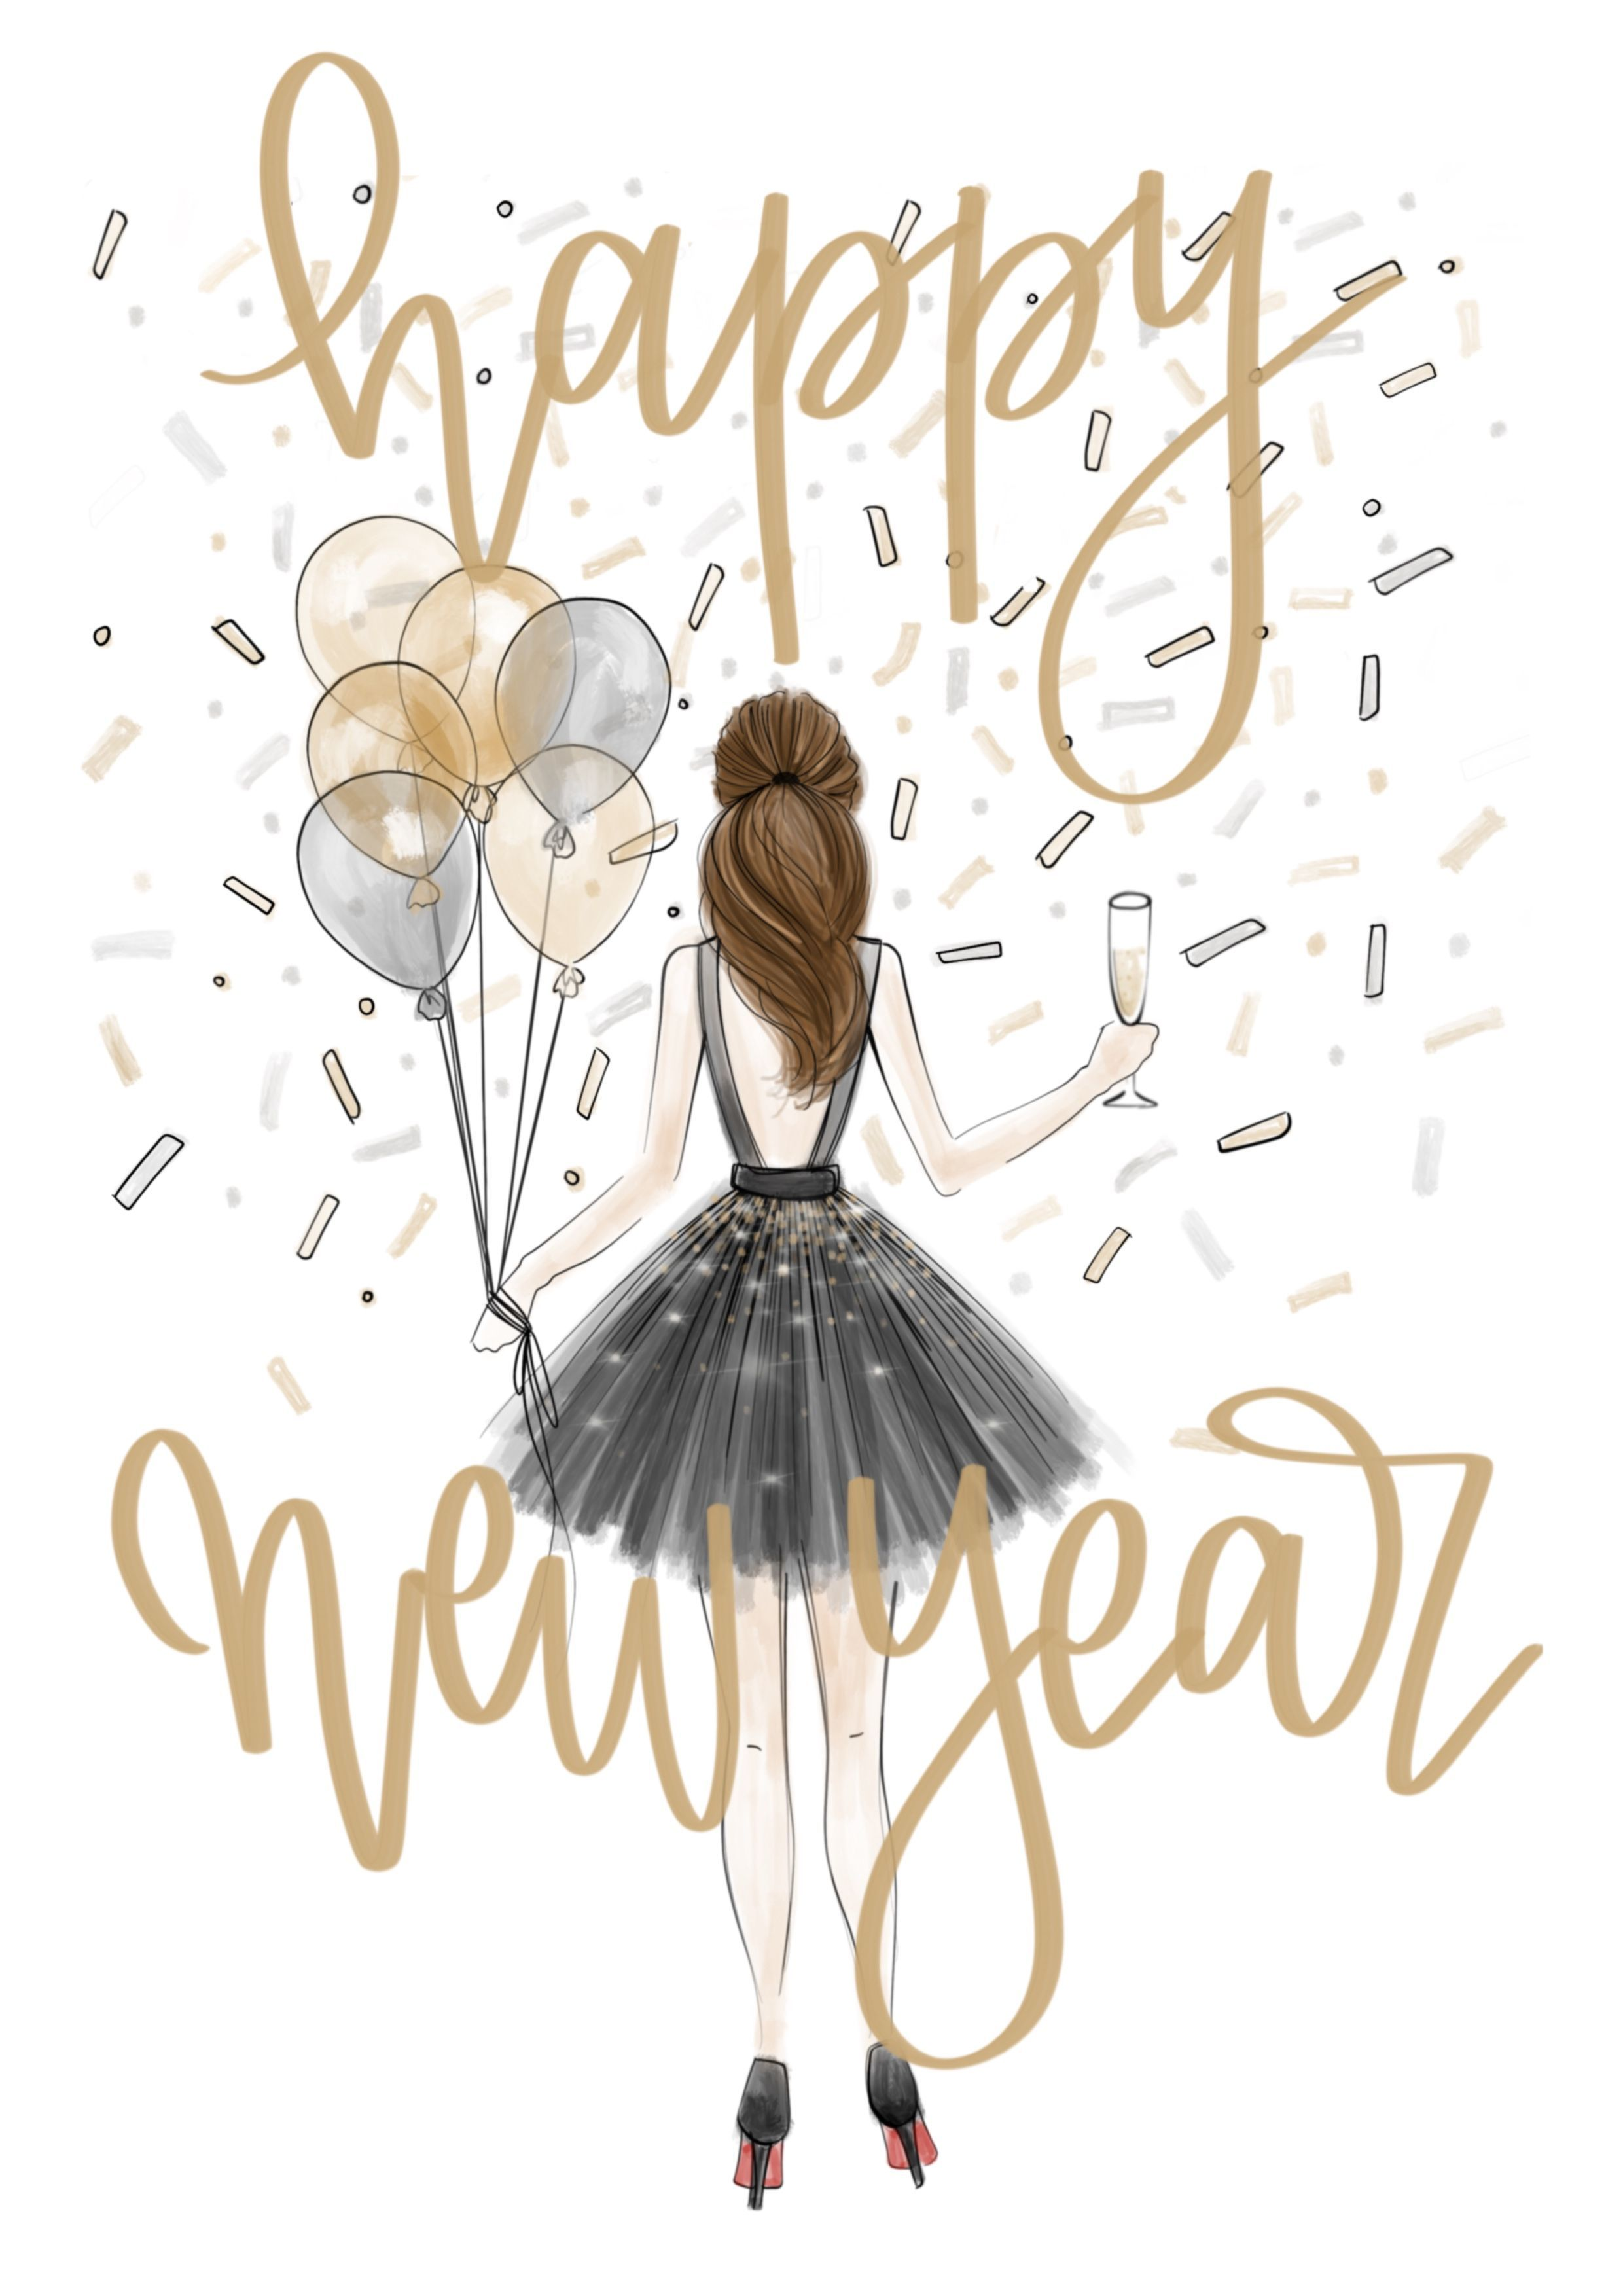 Happy new year celebrate iPhone wallpaper Shop the